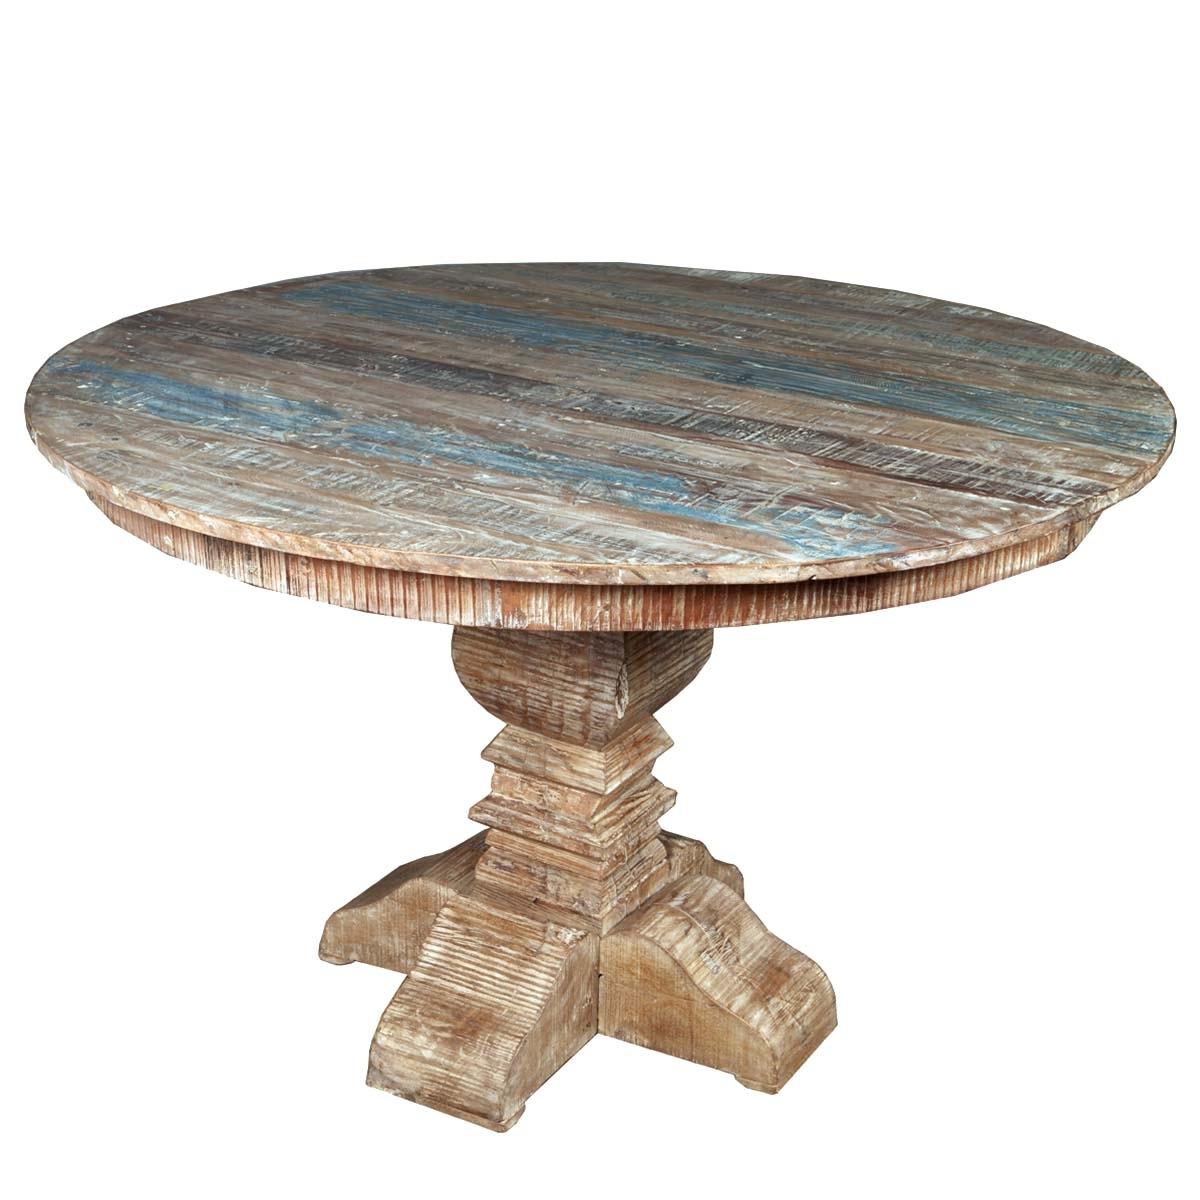 Most Recently Released French Quarter Rustic Reclaimed Wood Round Dining Table In Oval Reclaimed Wood Dining Tables (View 12 of 25)